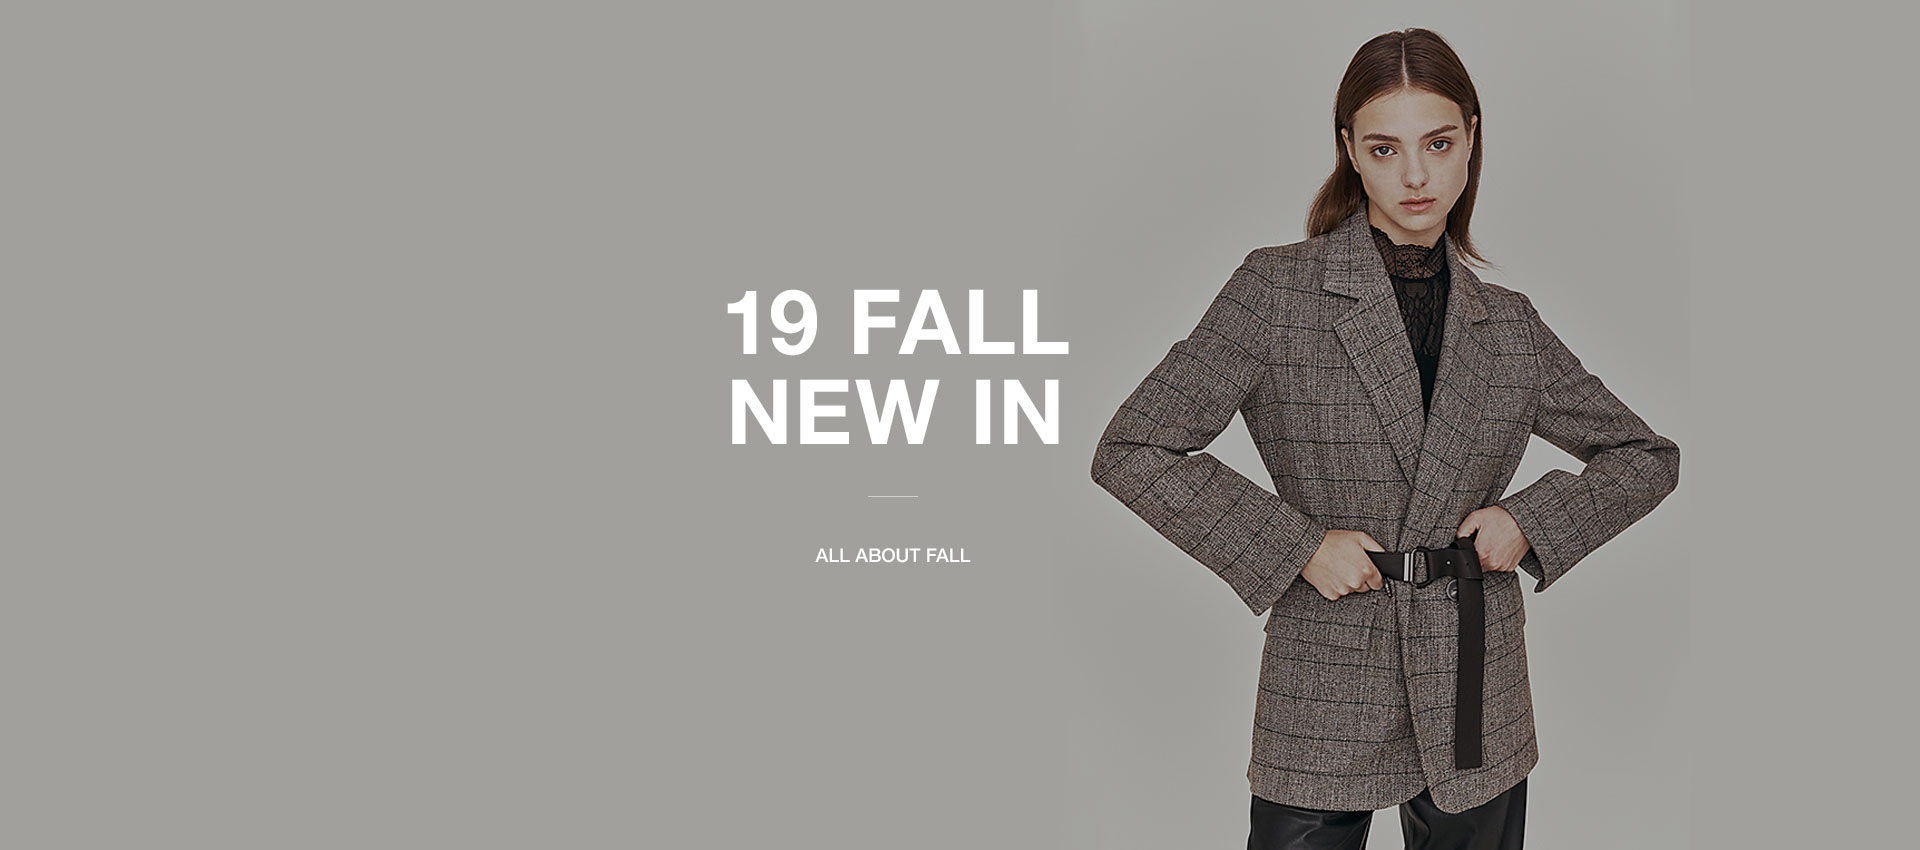 19 FALL NEW IN